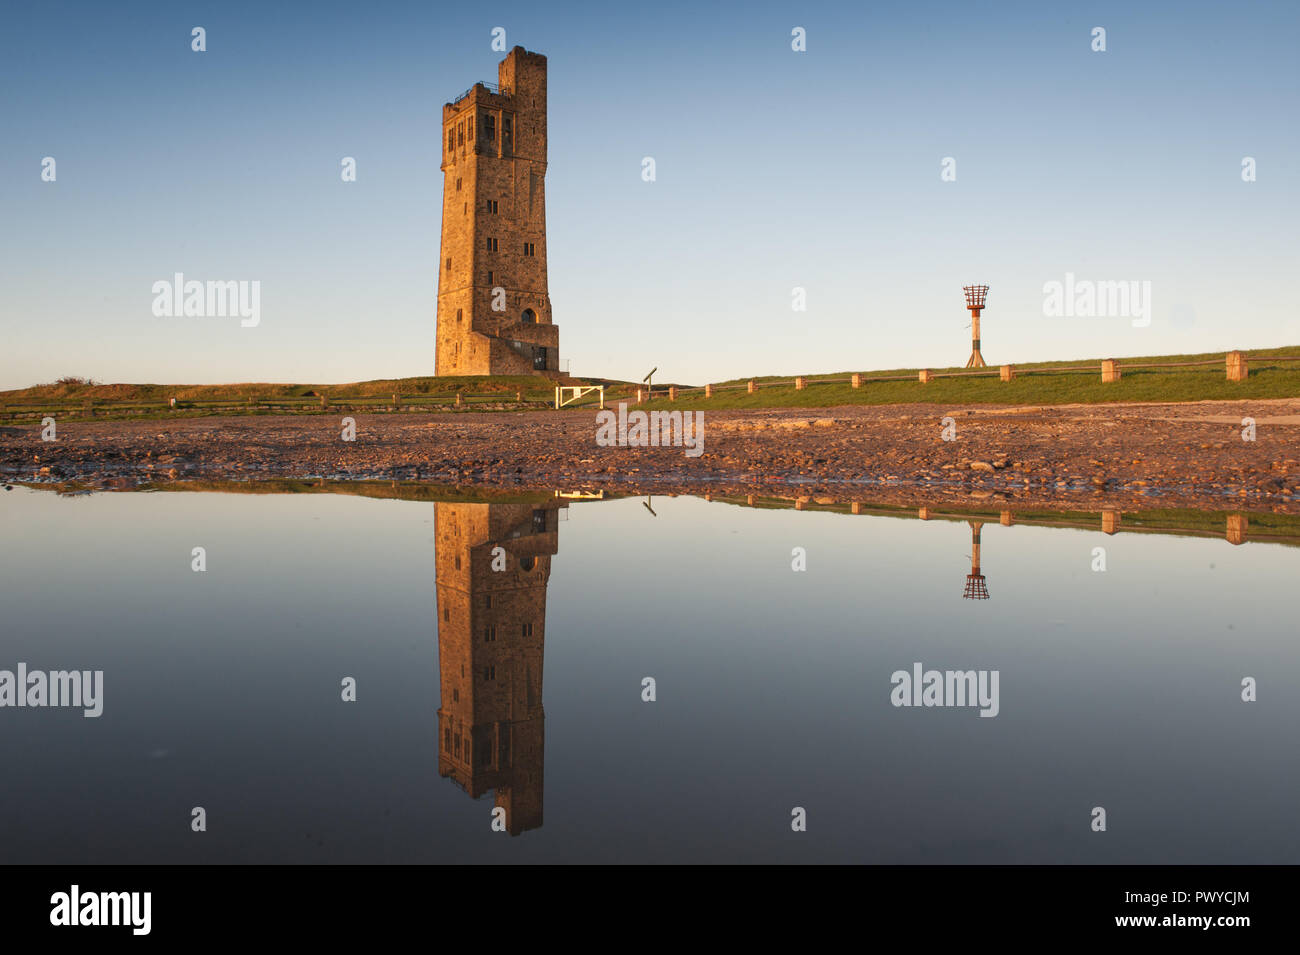 Victoria Tower on Castle Hill, a scheduled ancient monument in Almondbury overlooking Huddersfield in the Metropolitan Borough of Kirklees, West Yorks - Stock Image